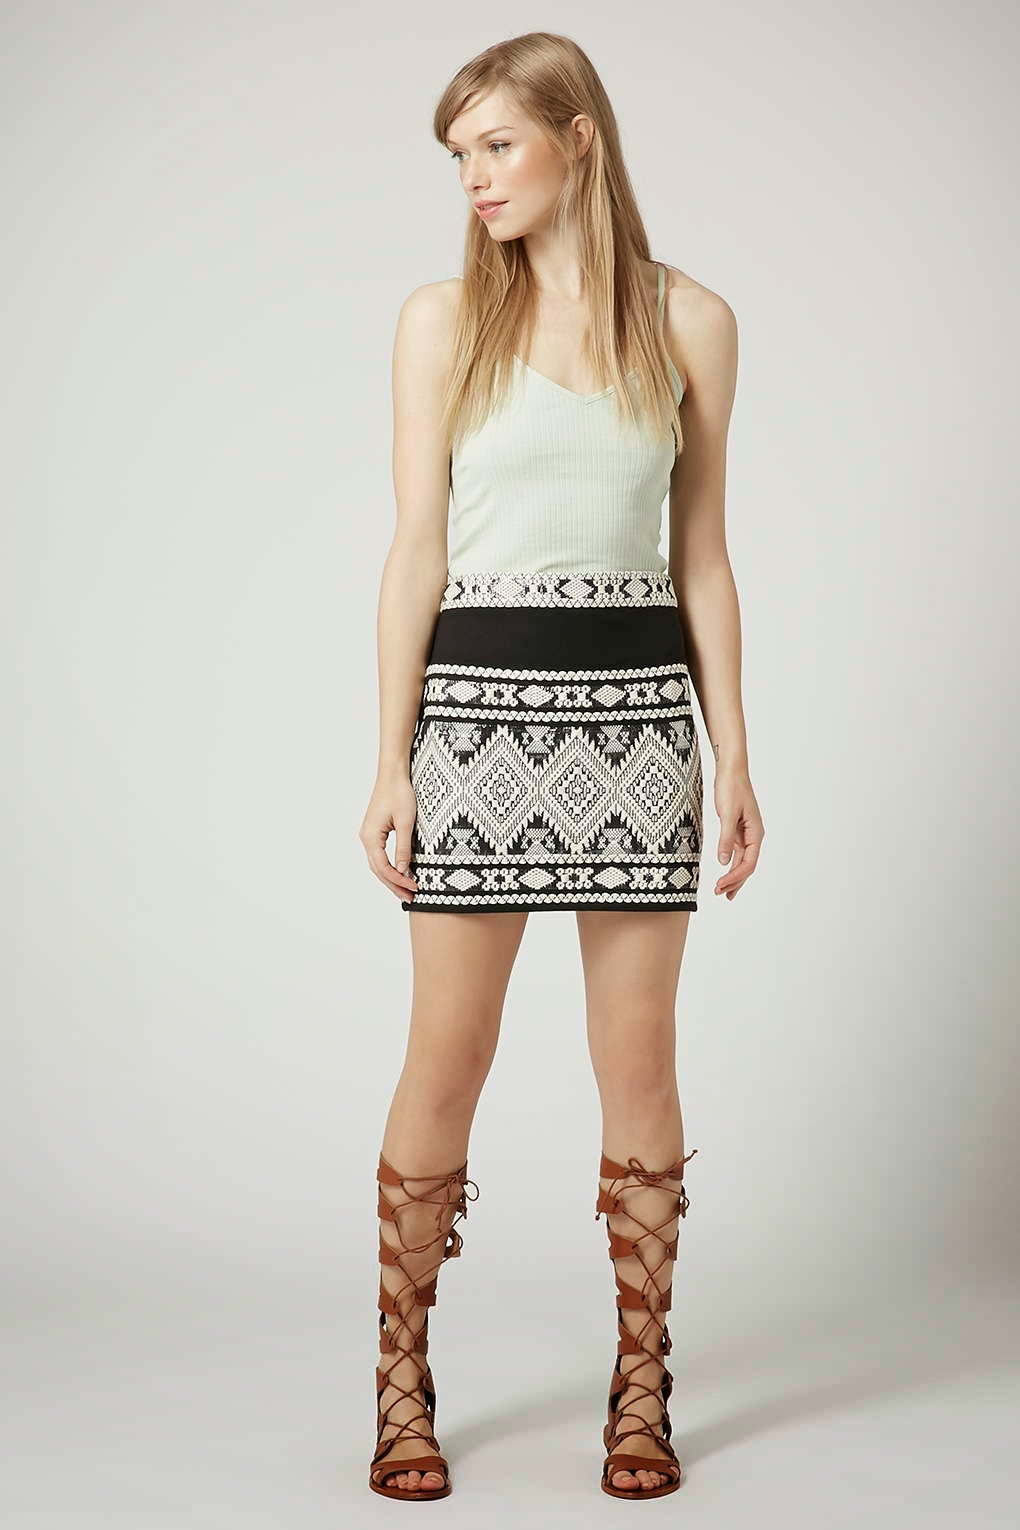 topshop black white pattern skirt